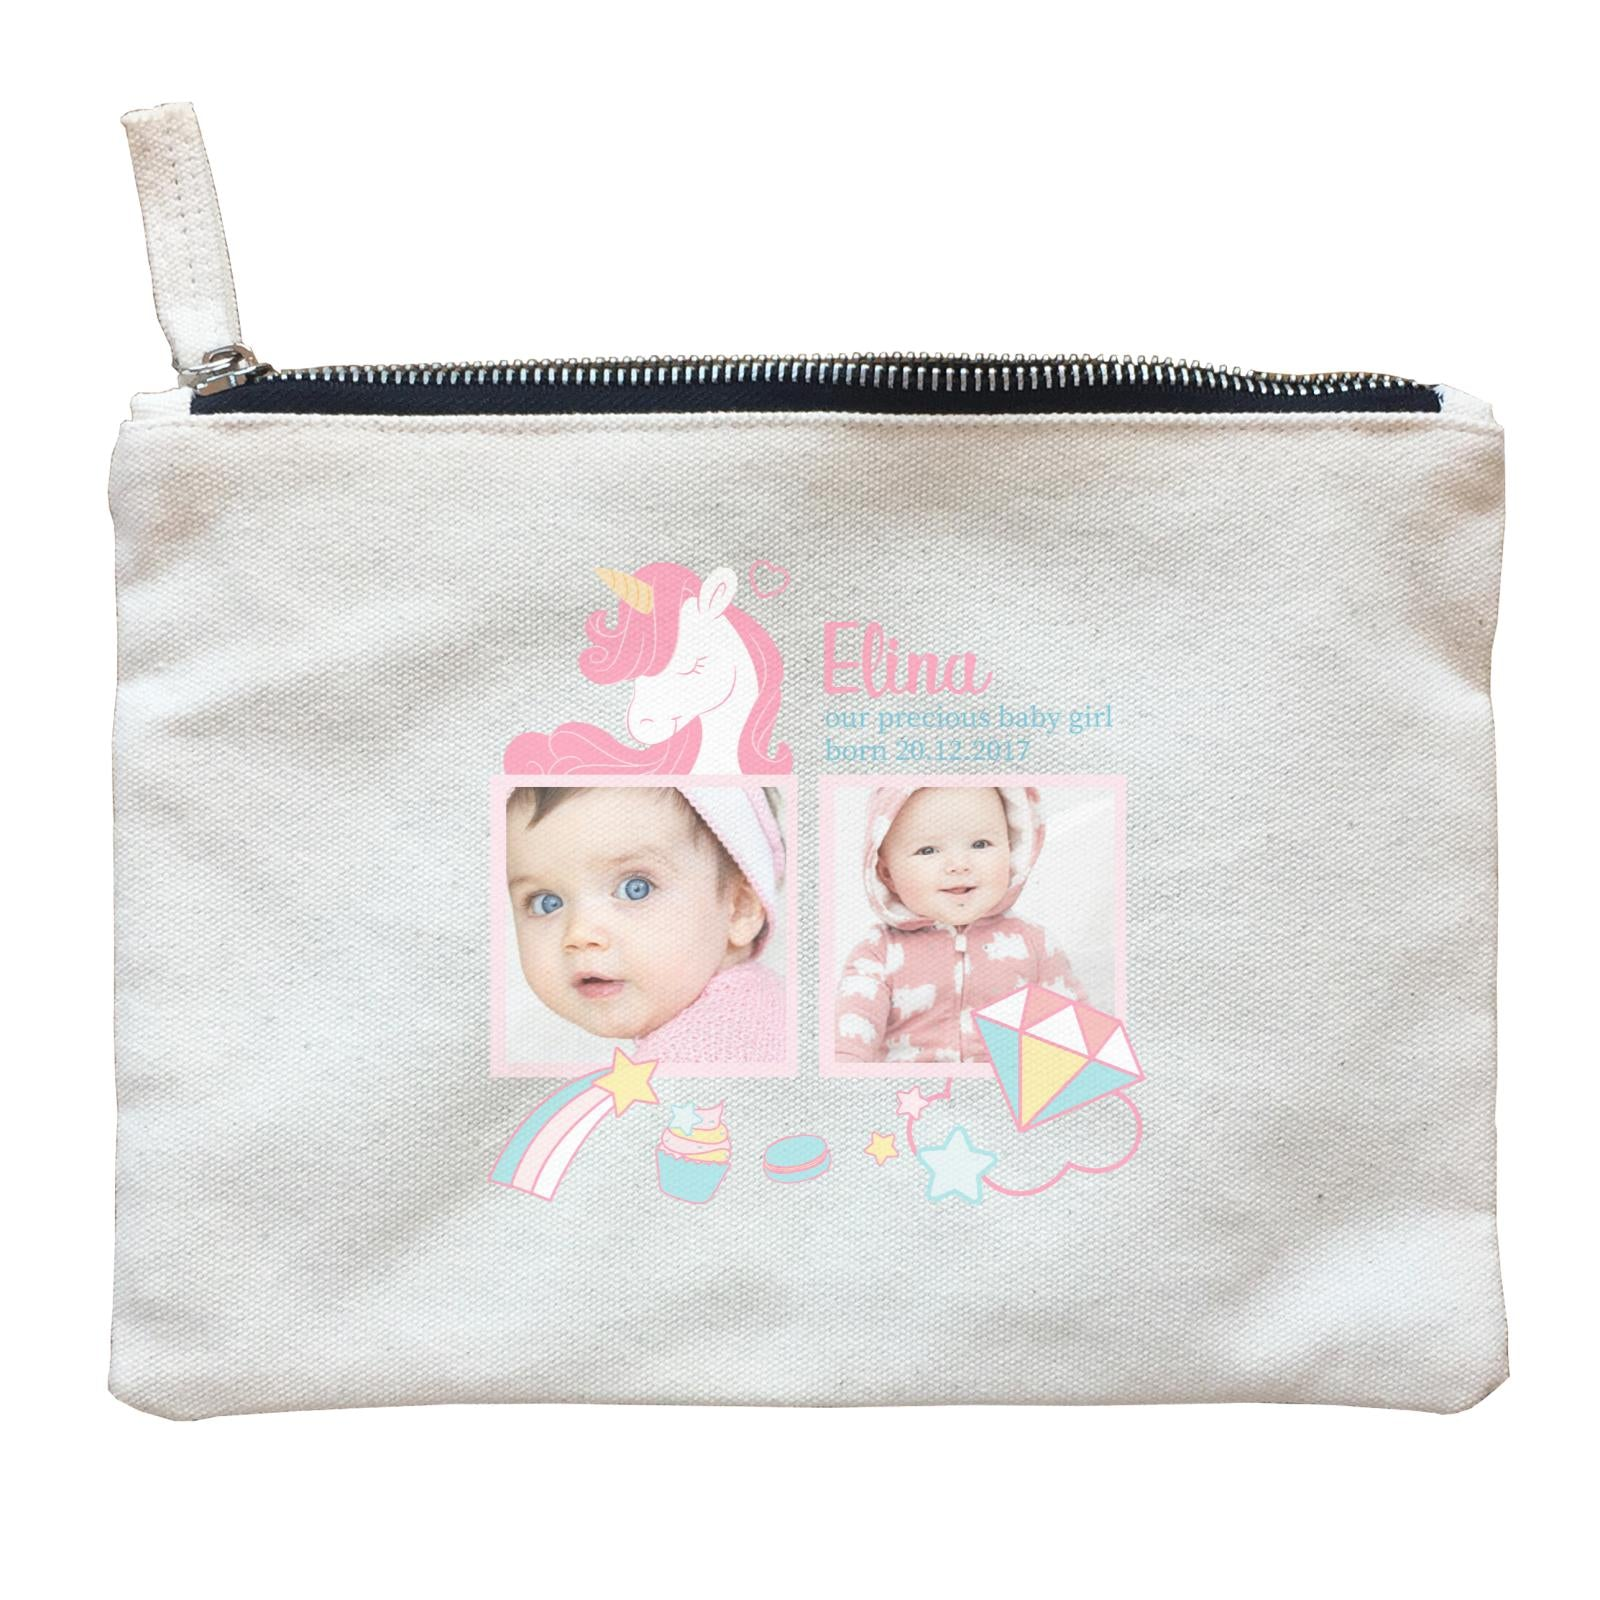 Photo Gift Series Sweet Unicorn Baby Girl Zipper Pouch